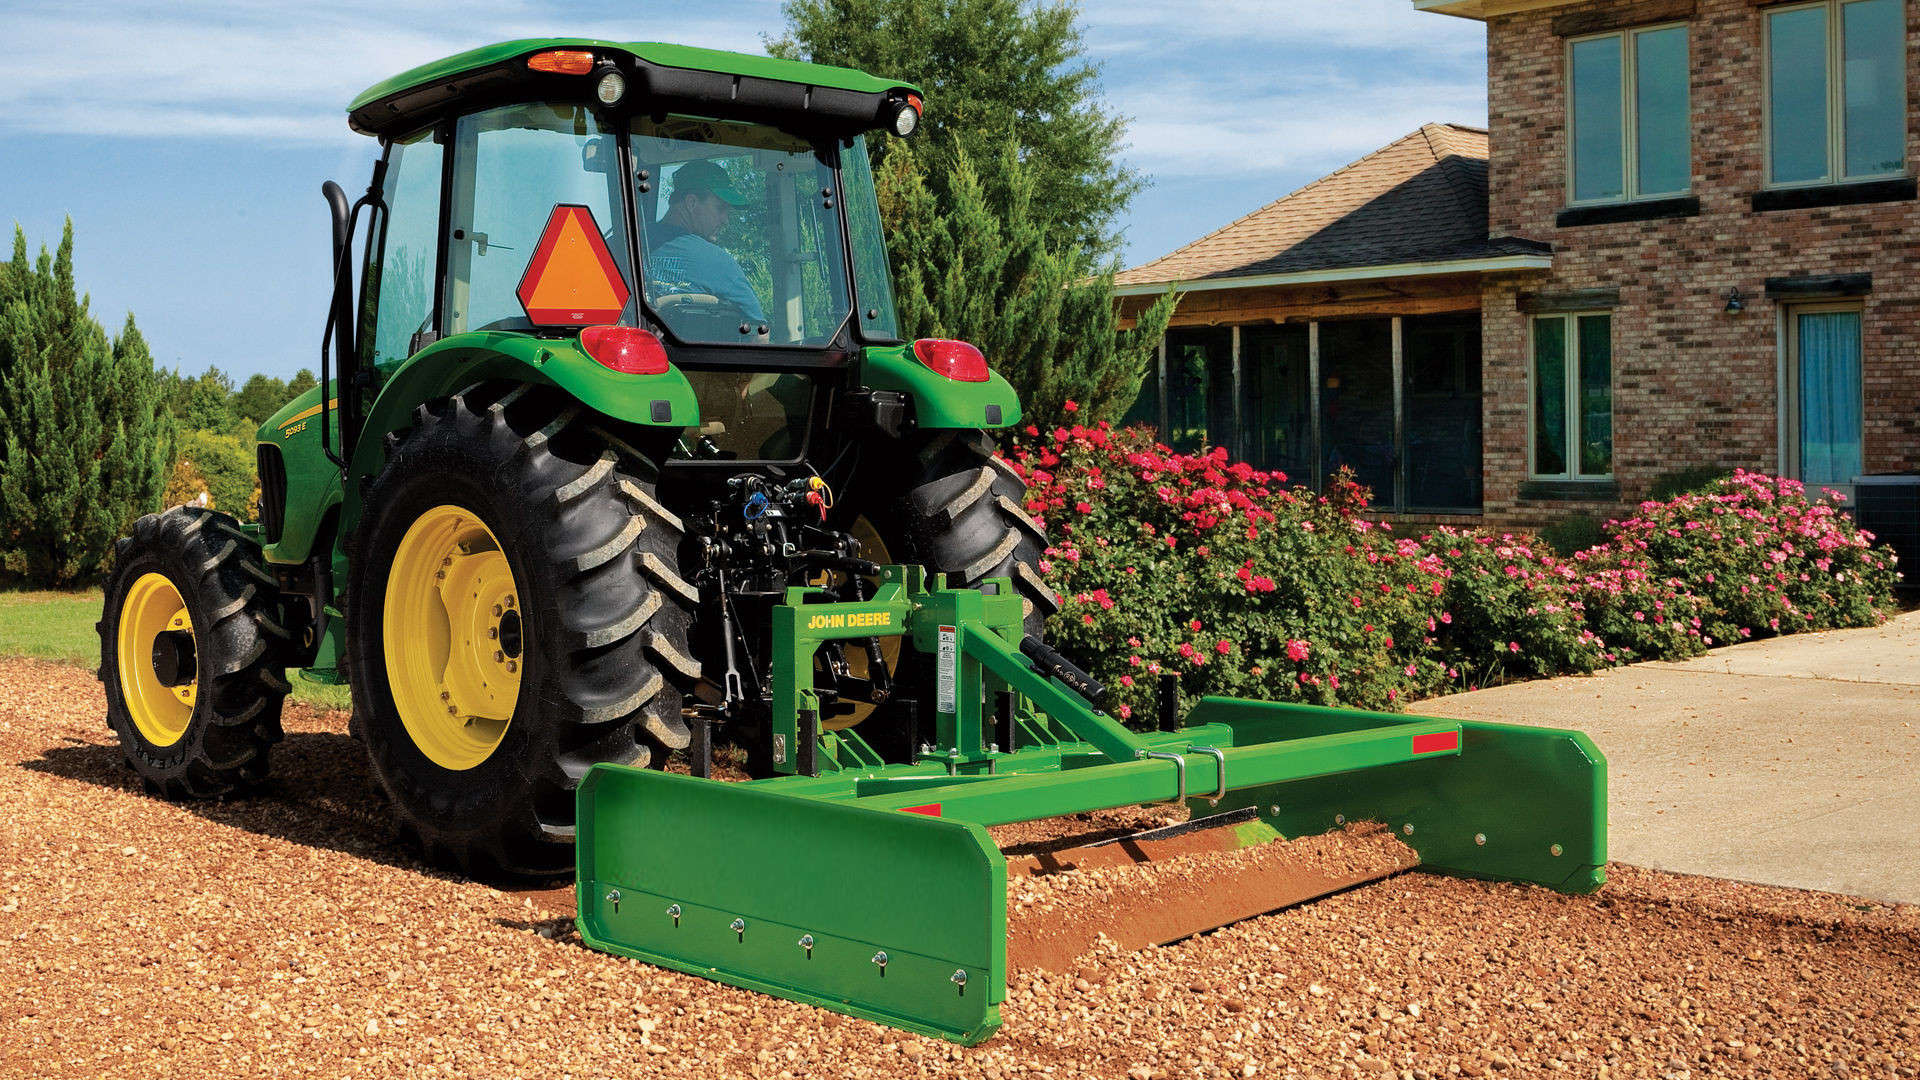 Utility Tractor Attachments & Implements | John Deere ...